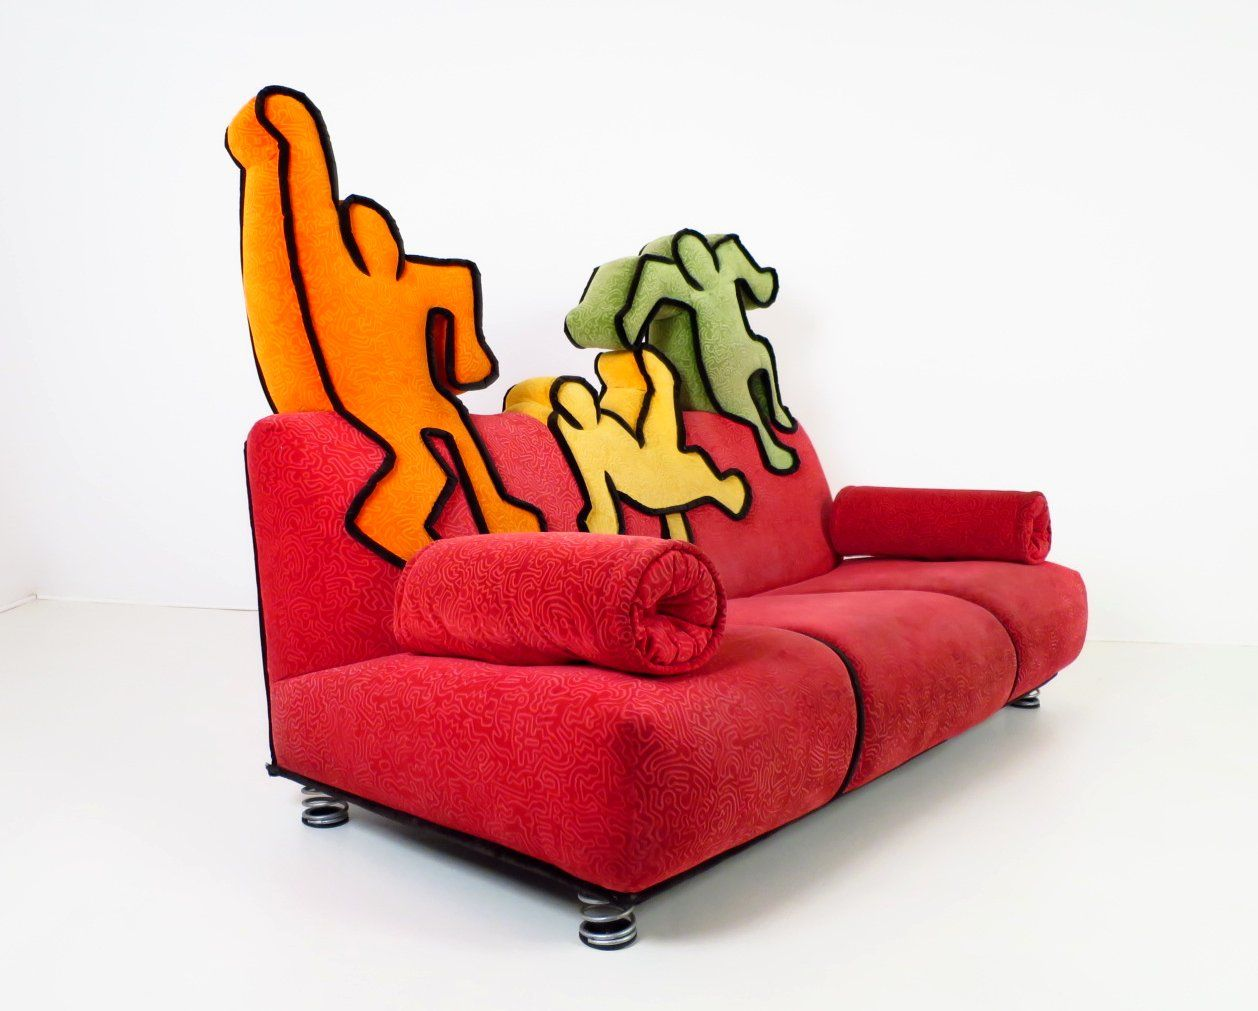 Bretz Sofa Bretz Sofa After Patterns By Keith Haring 1958 1990 Unusual